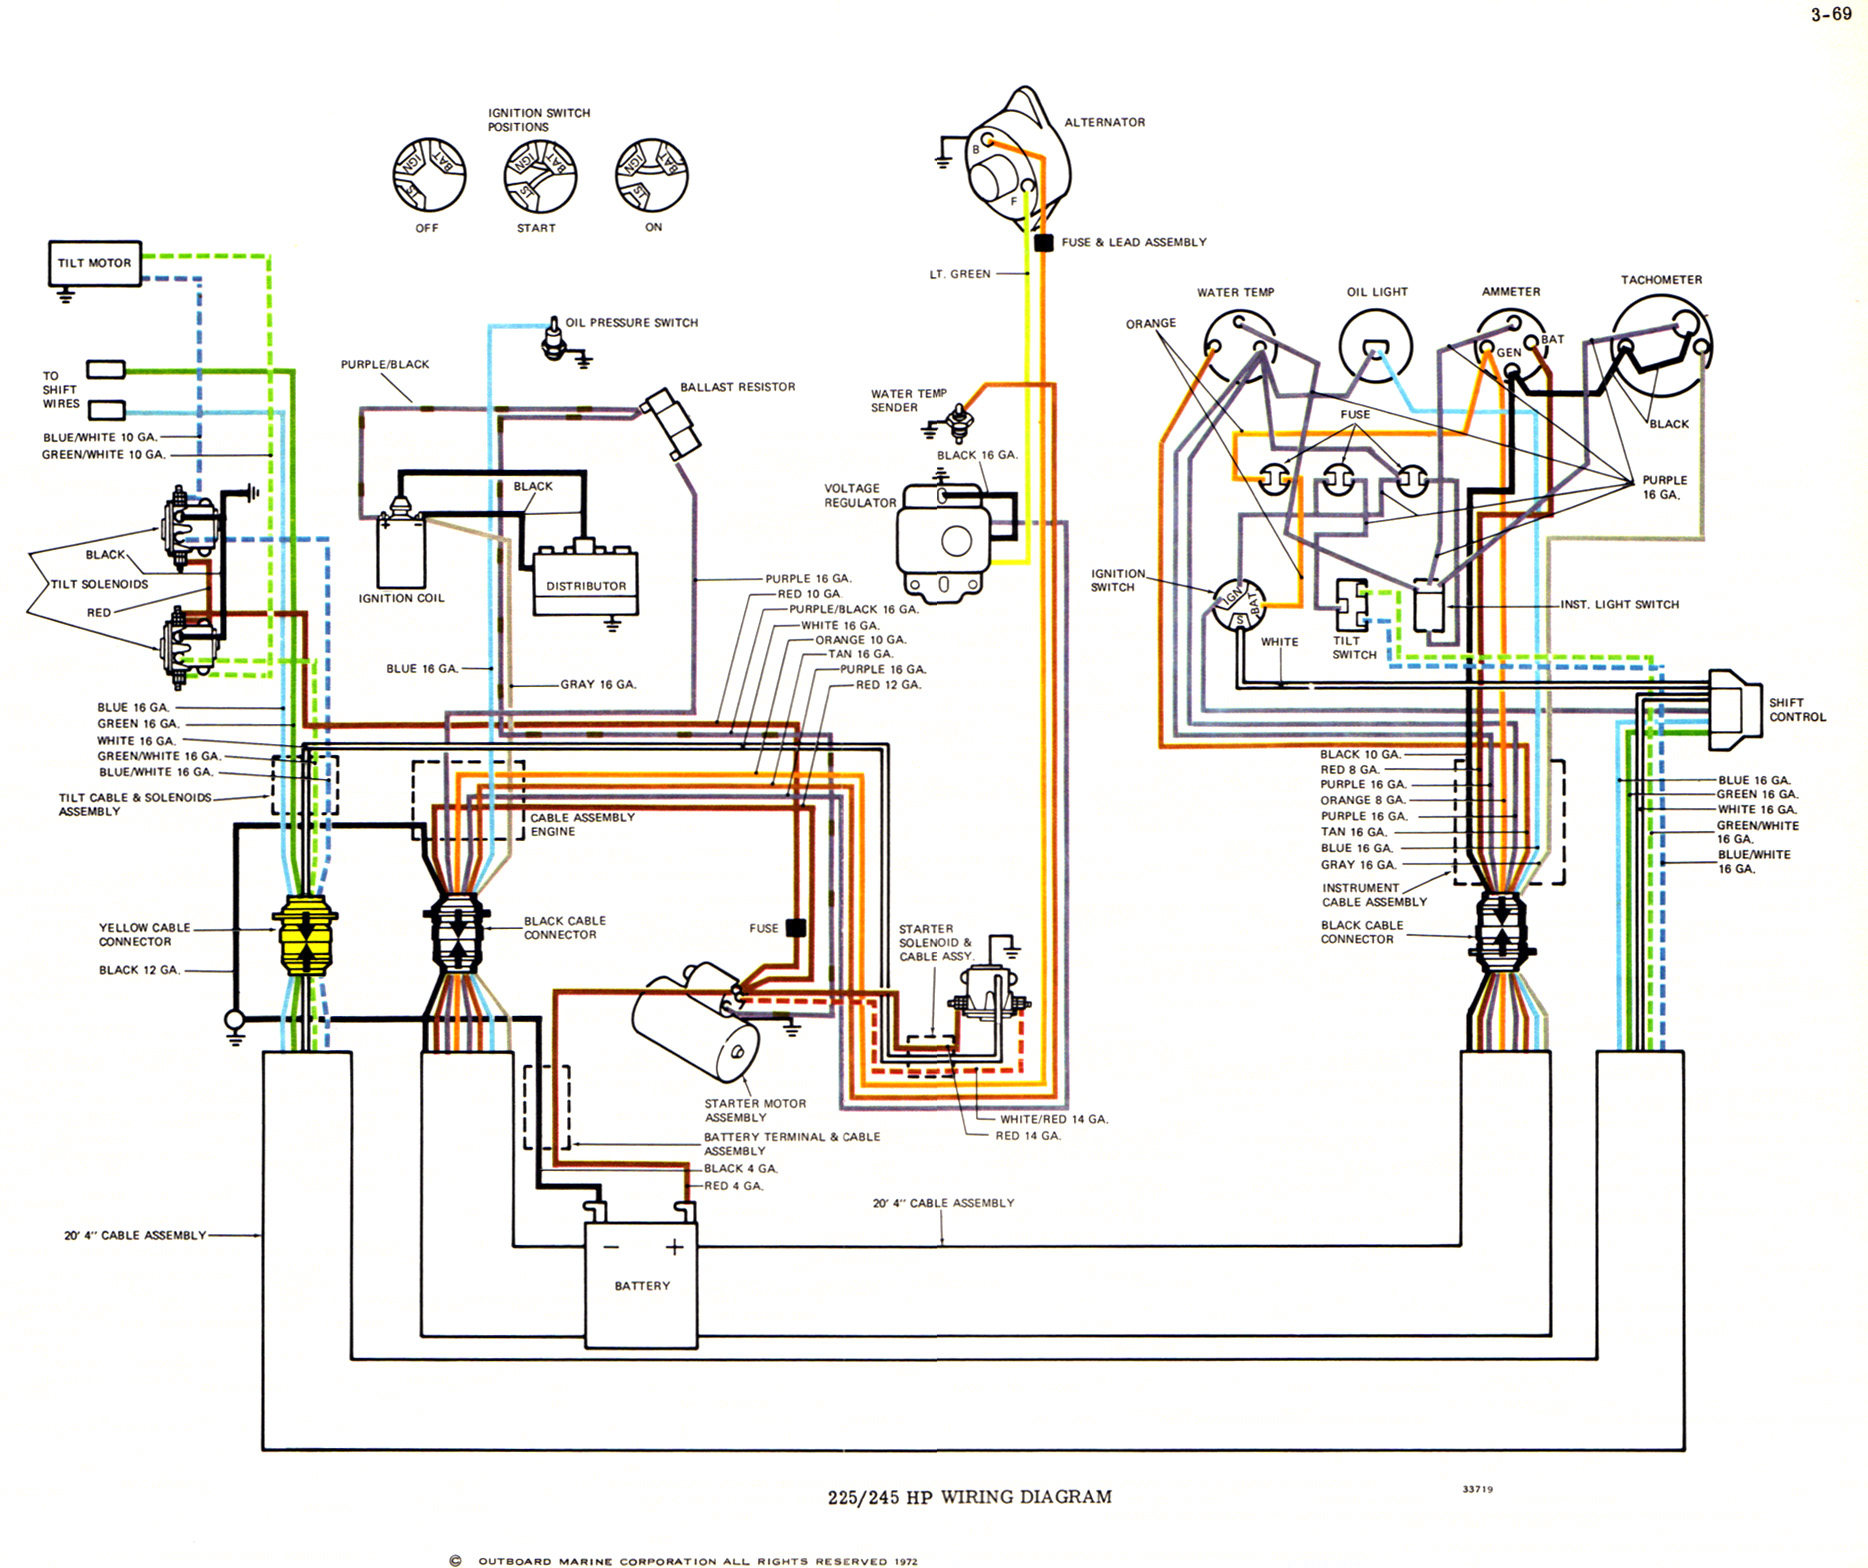 Boat Motor Diagrams | Wiring Diagram on skeeter boat relay, skeeter wiring harness colors, skeeter parts, skeeter boat wiring schematic, skeeter seats,